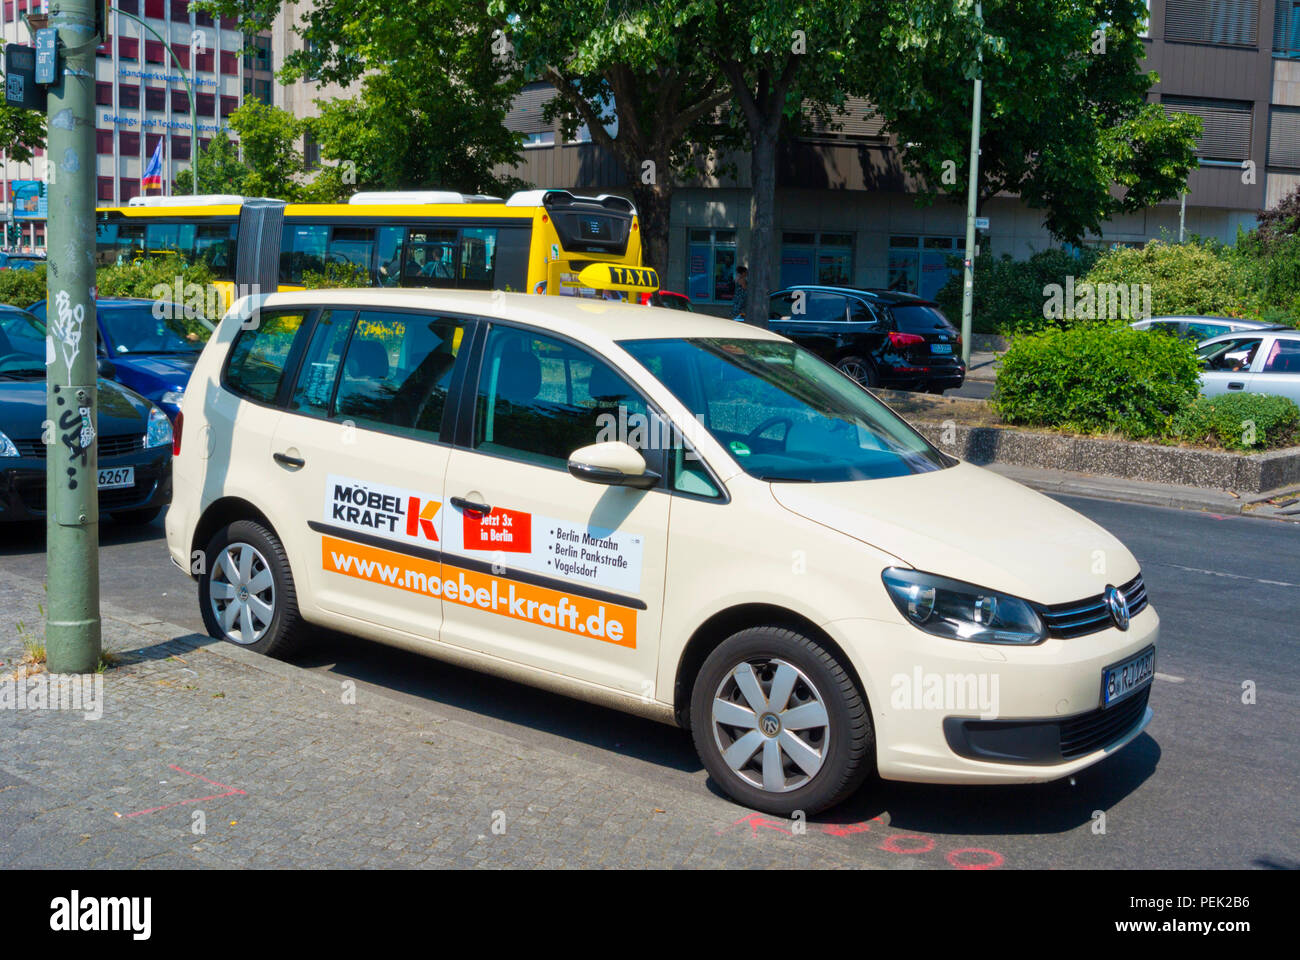 Taxi Germany Stock Photos Taxi Germany Stock Images Alamy